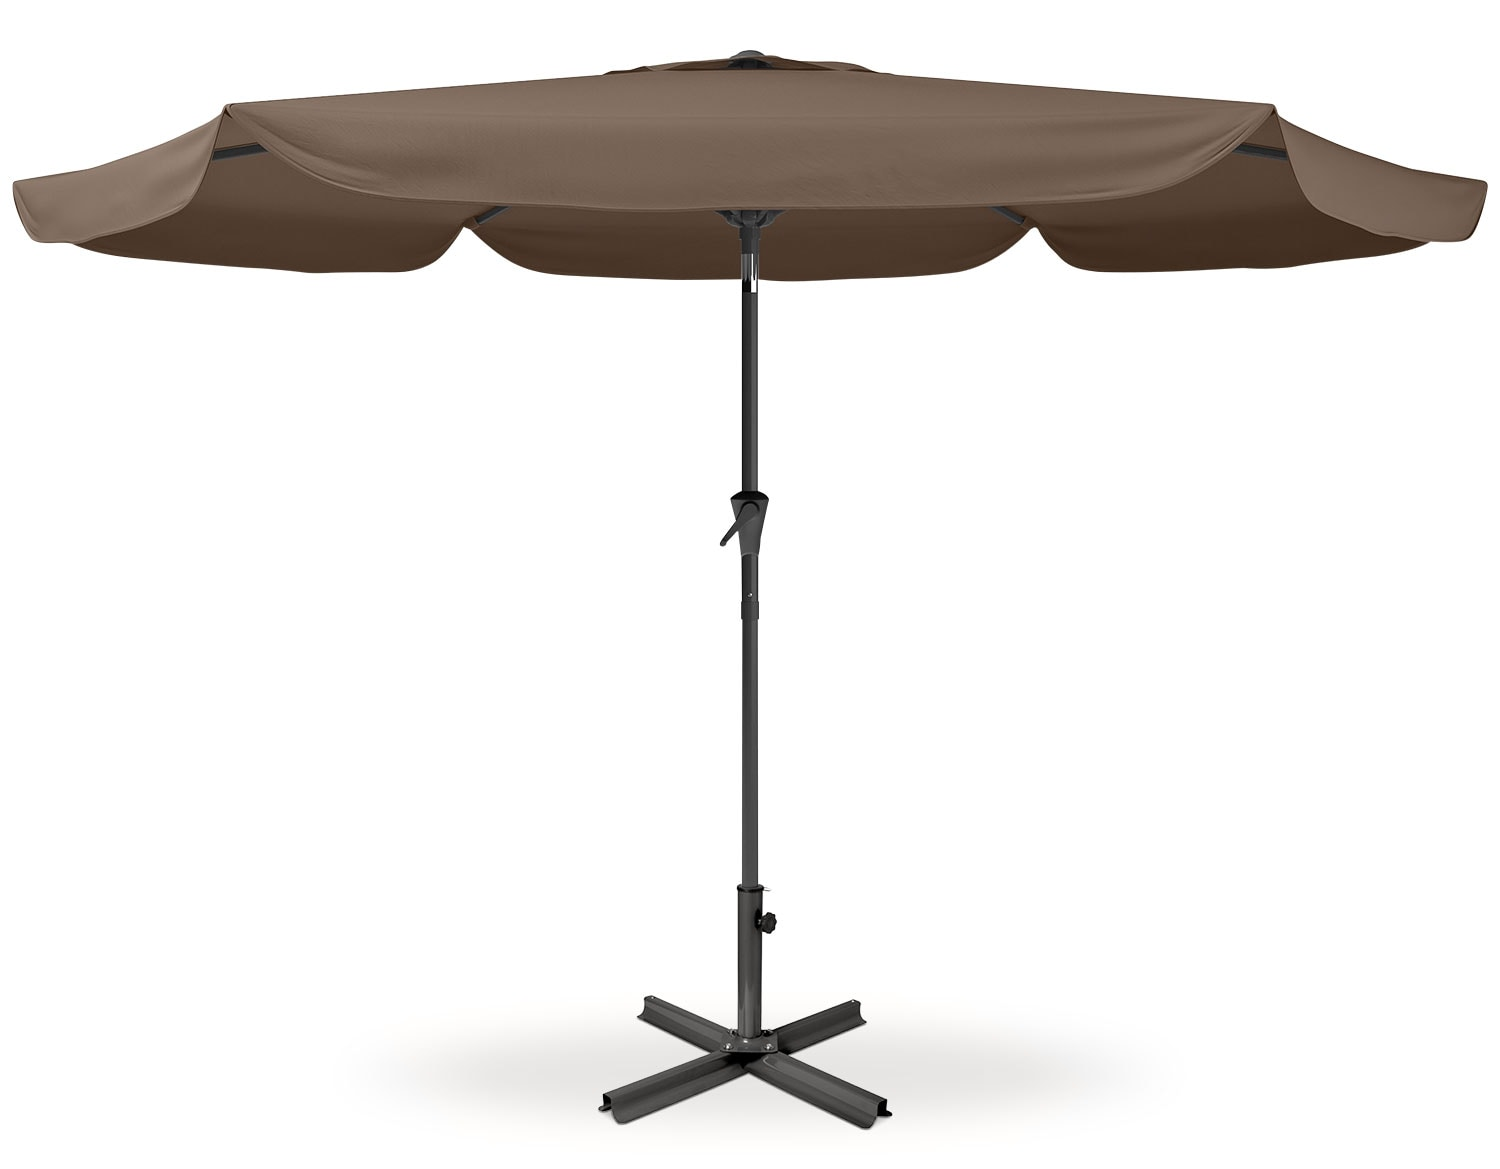 Outdoor Furniture - Culver Patio Umbrella - Sandy Brown